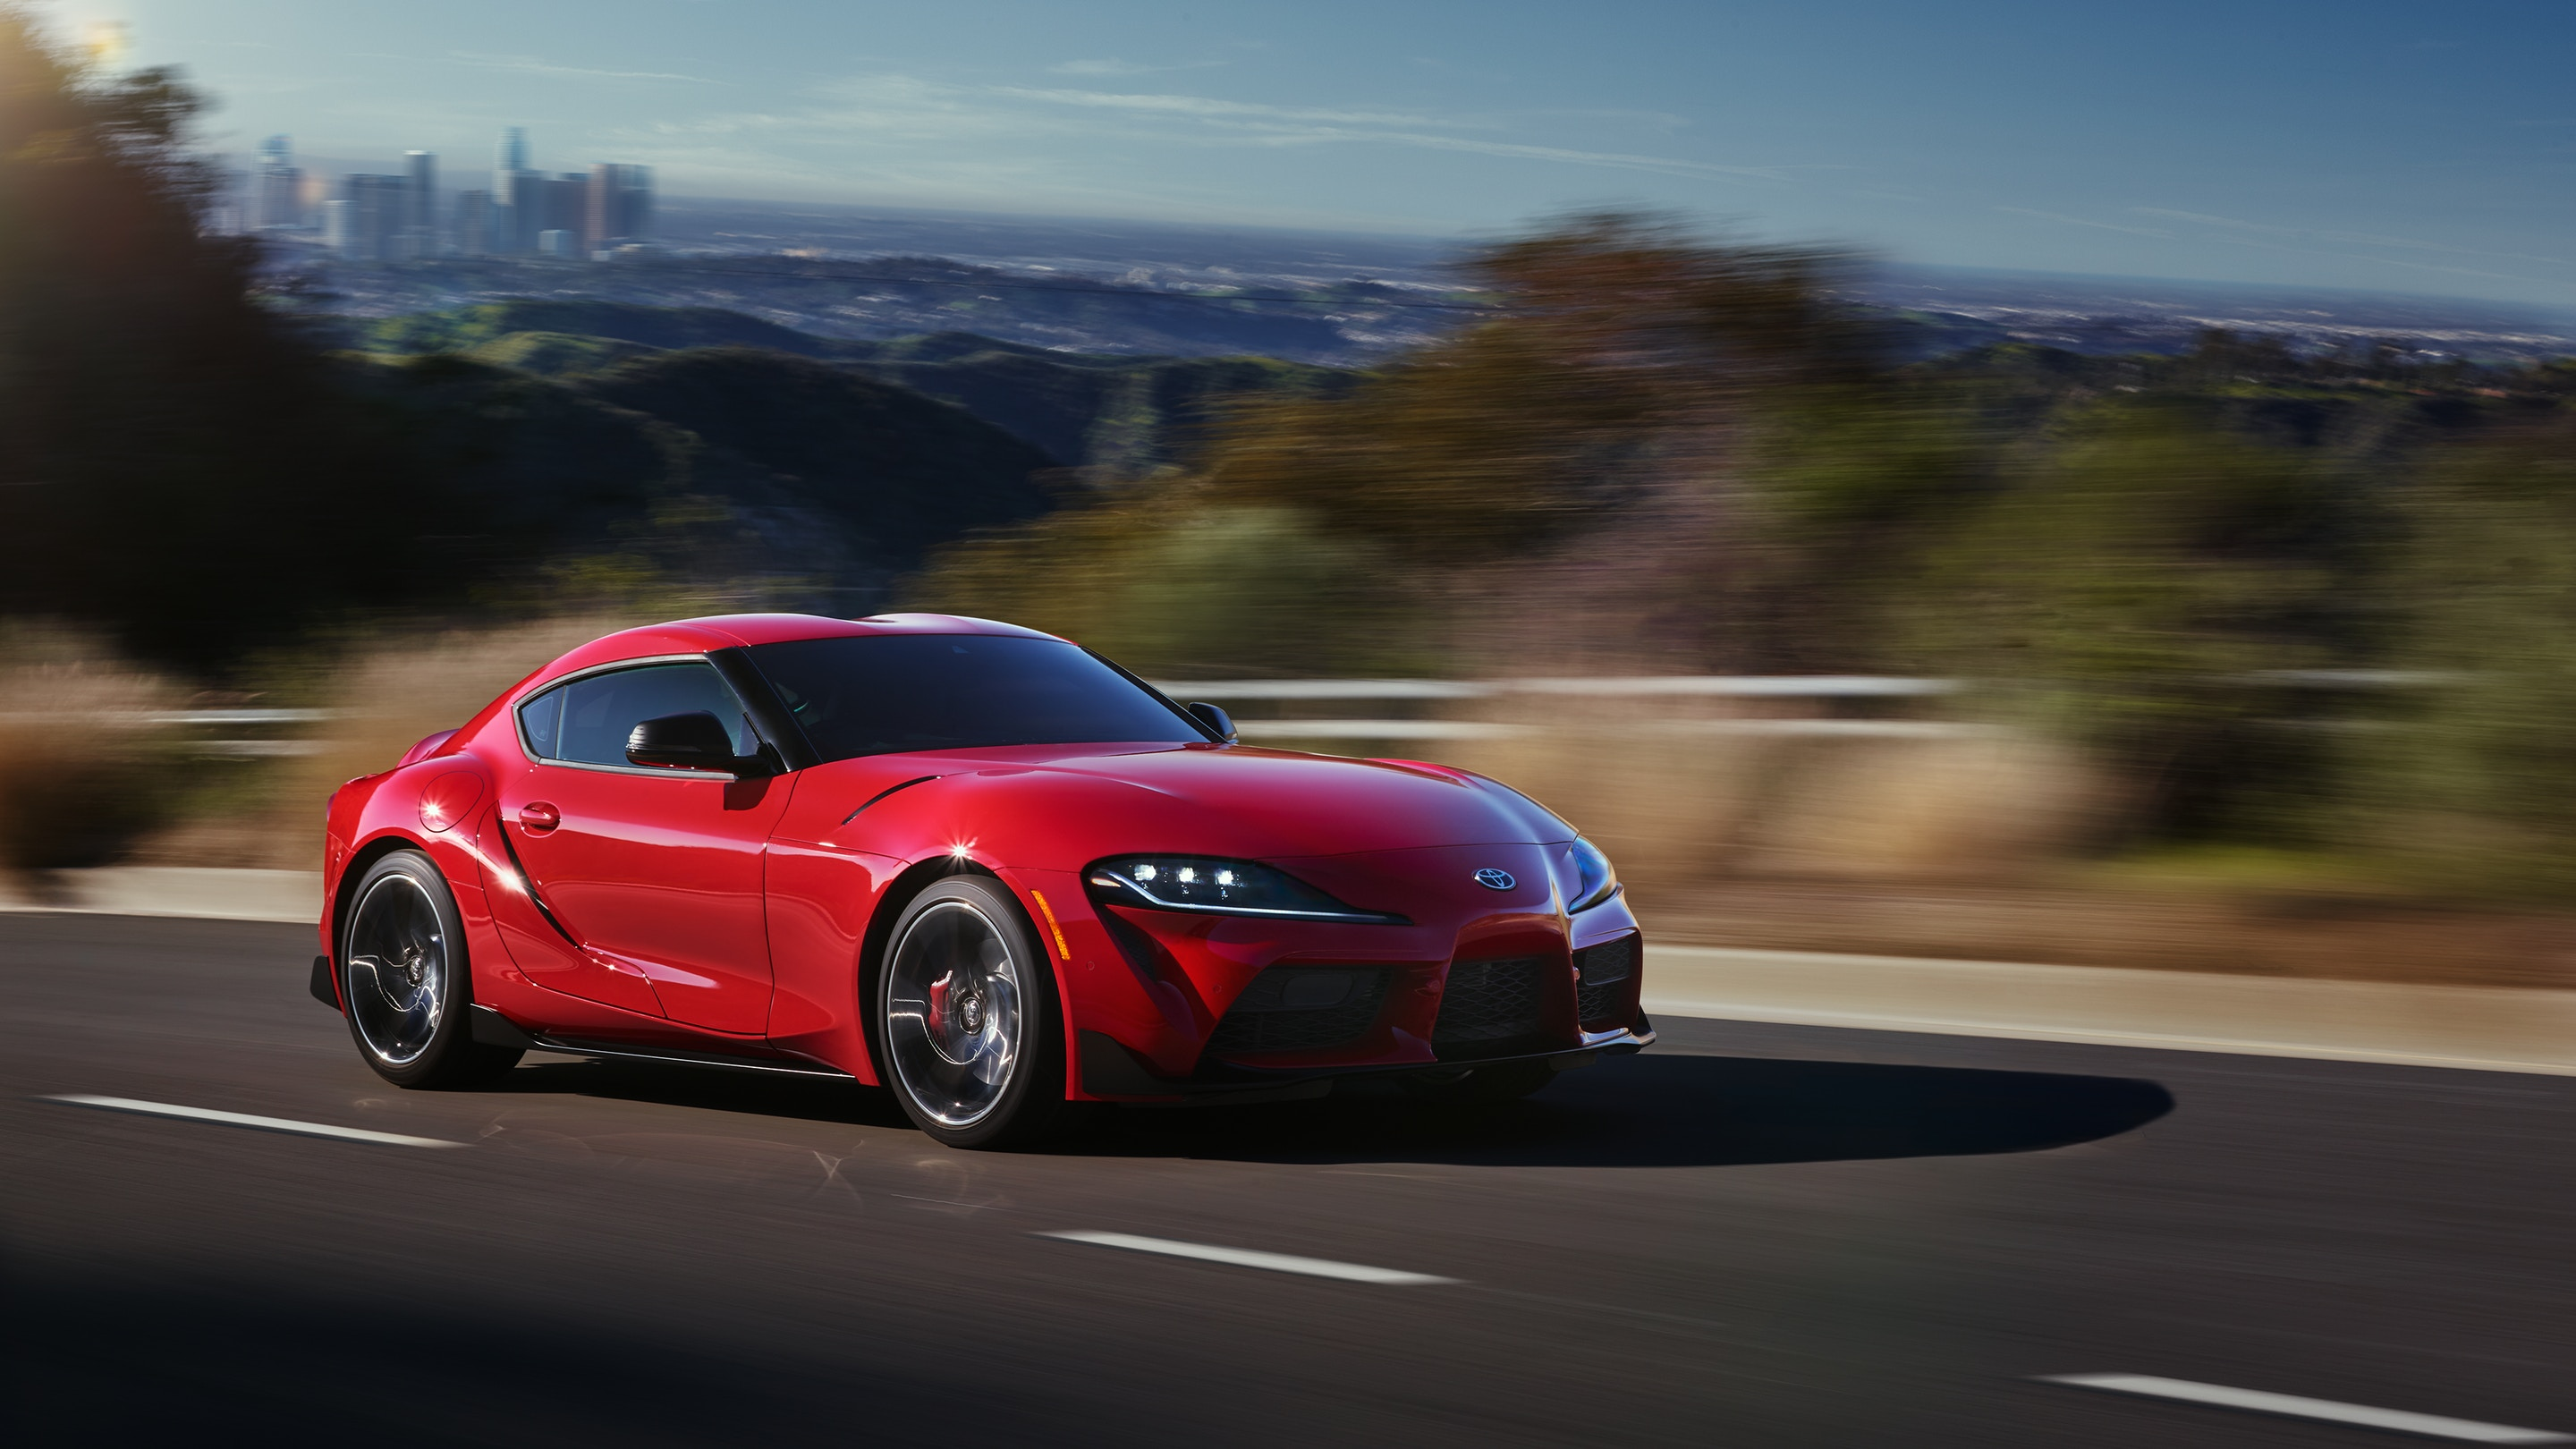 2020 Toyota Supra for Sale near Thorndale, PA